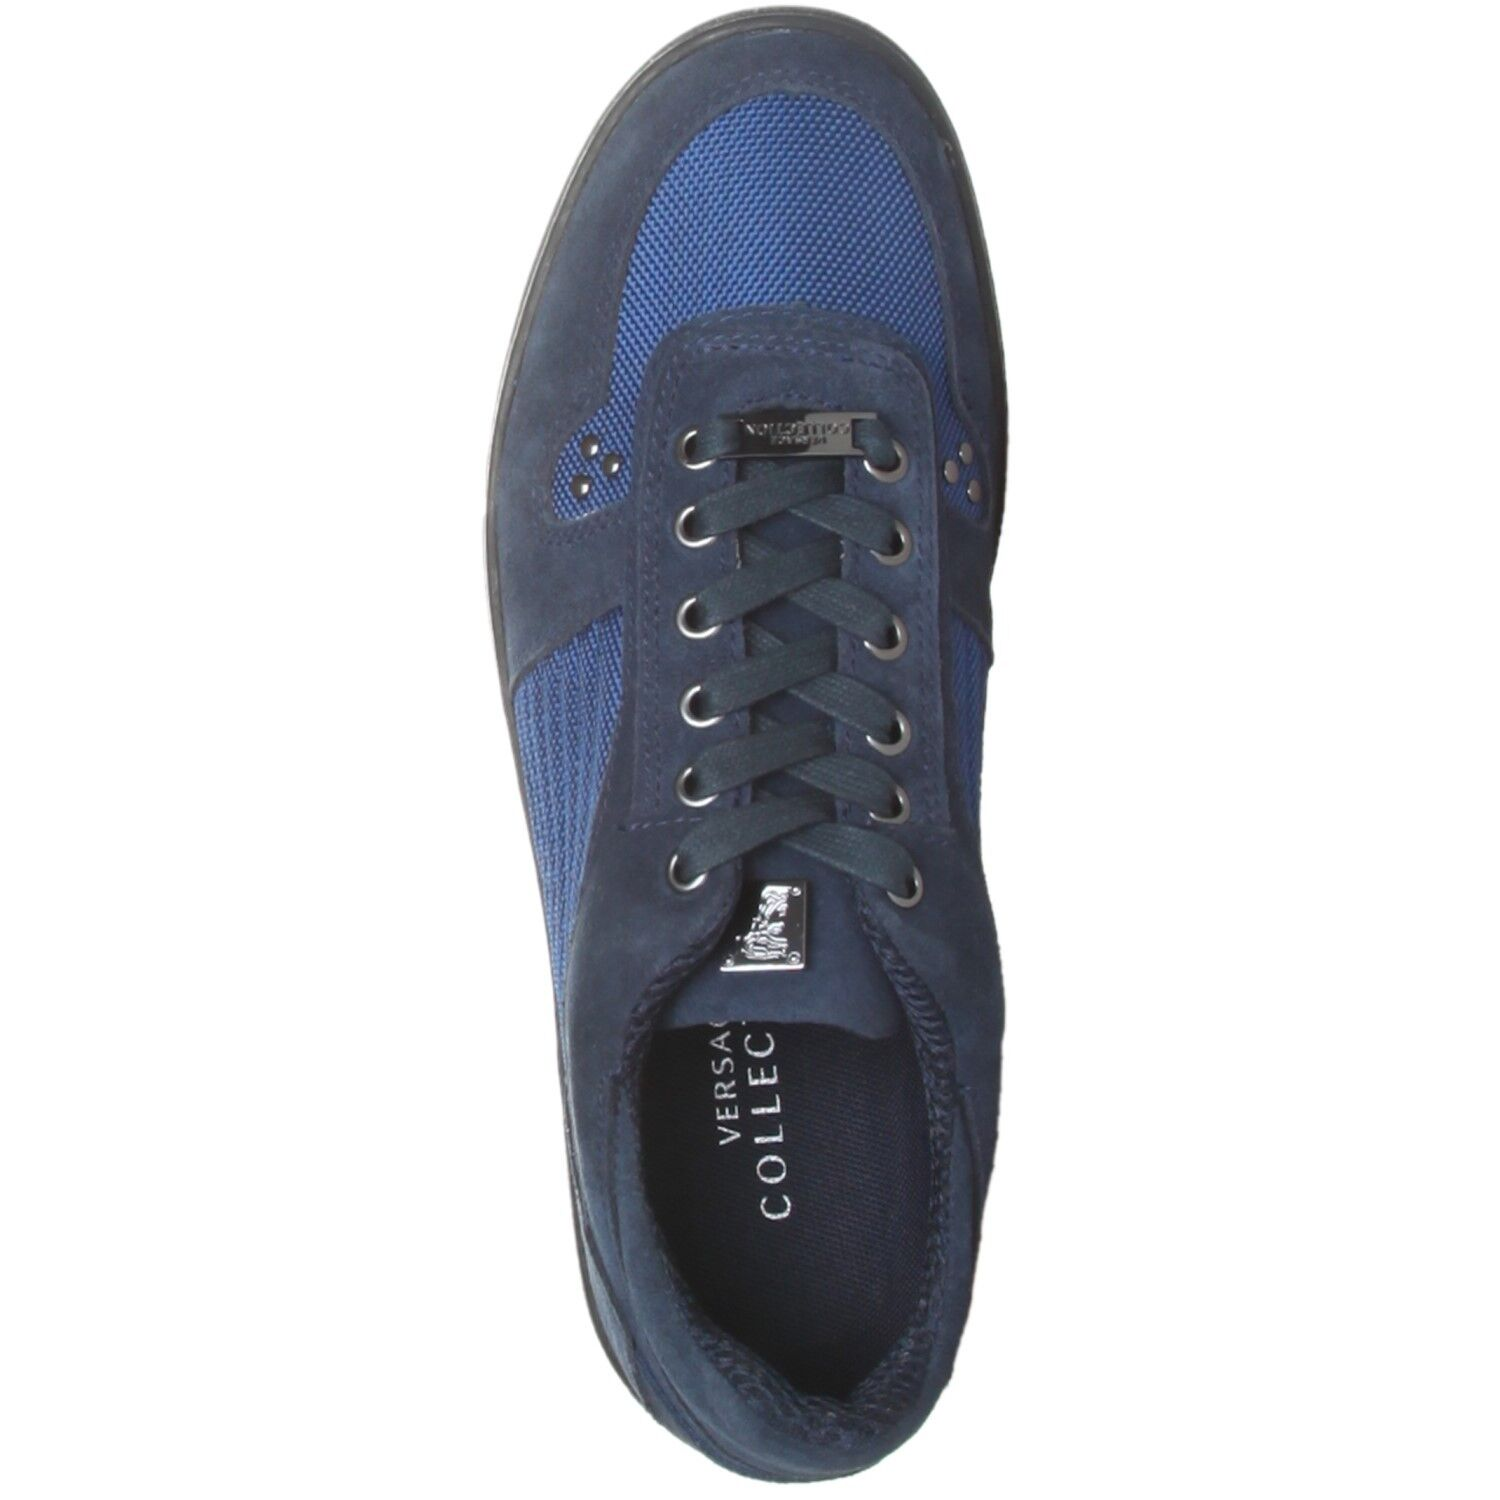 VERSACE Collection Damen Herren Sneakers Zapatos TurnZapatos Trainers Gr.39 Gr.39 Gr.39 ae65fe